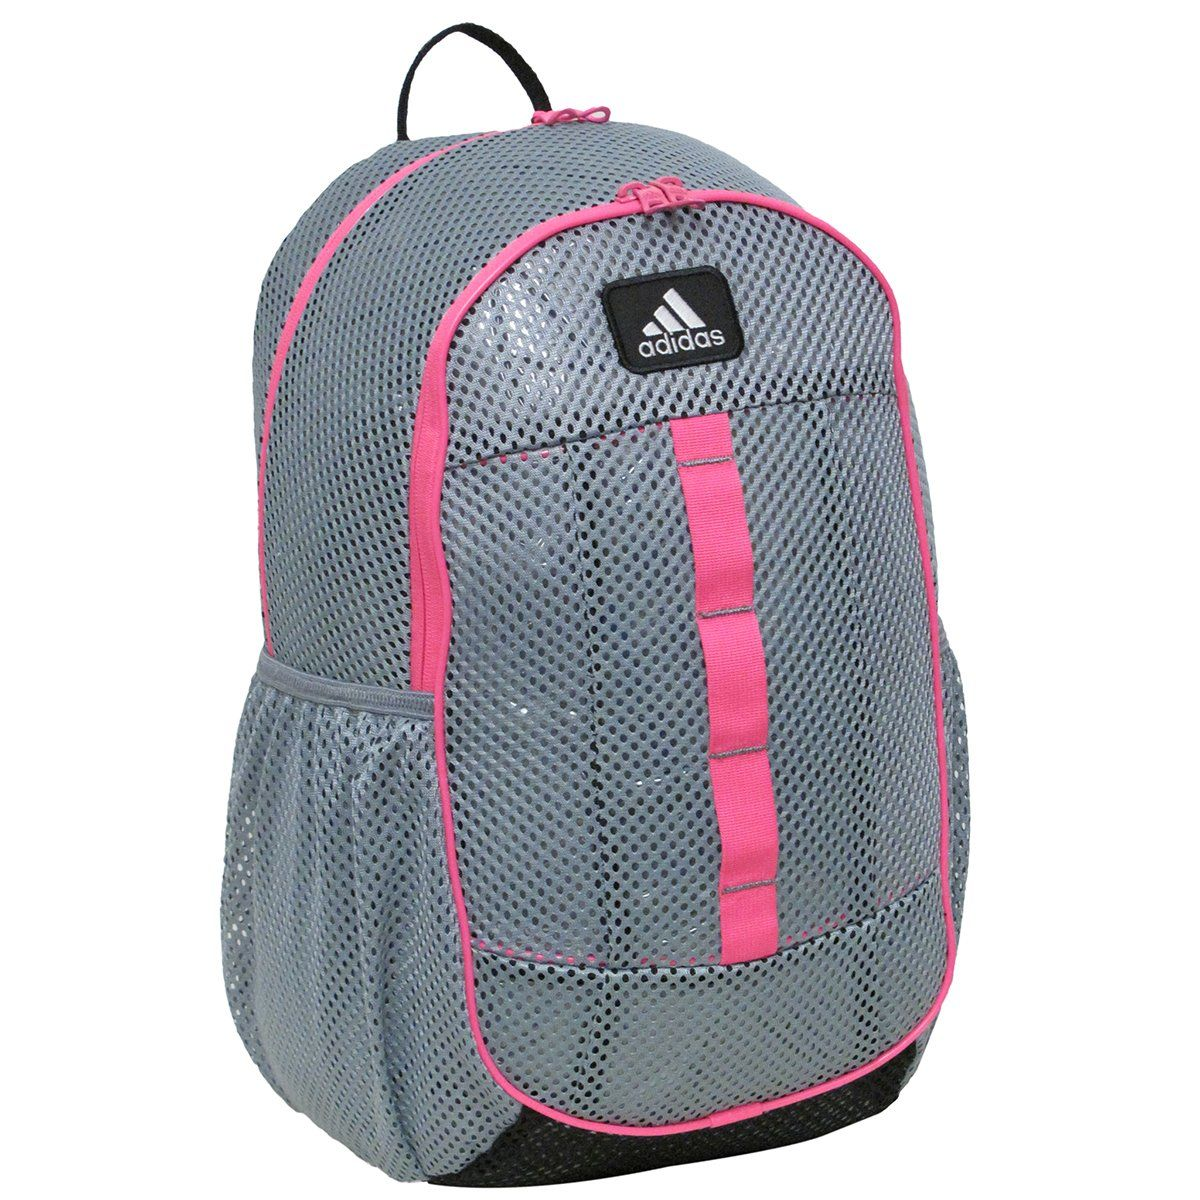 5c381d3f8a6ad Amazon.com : adidas Hermosa Mesh Backpack, Grey/Solar Pink, 19 1/2 x ...